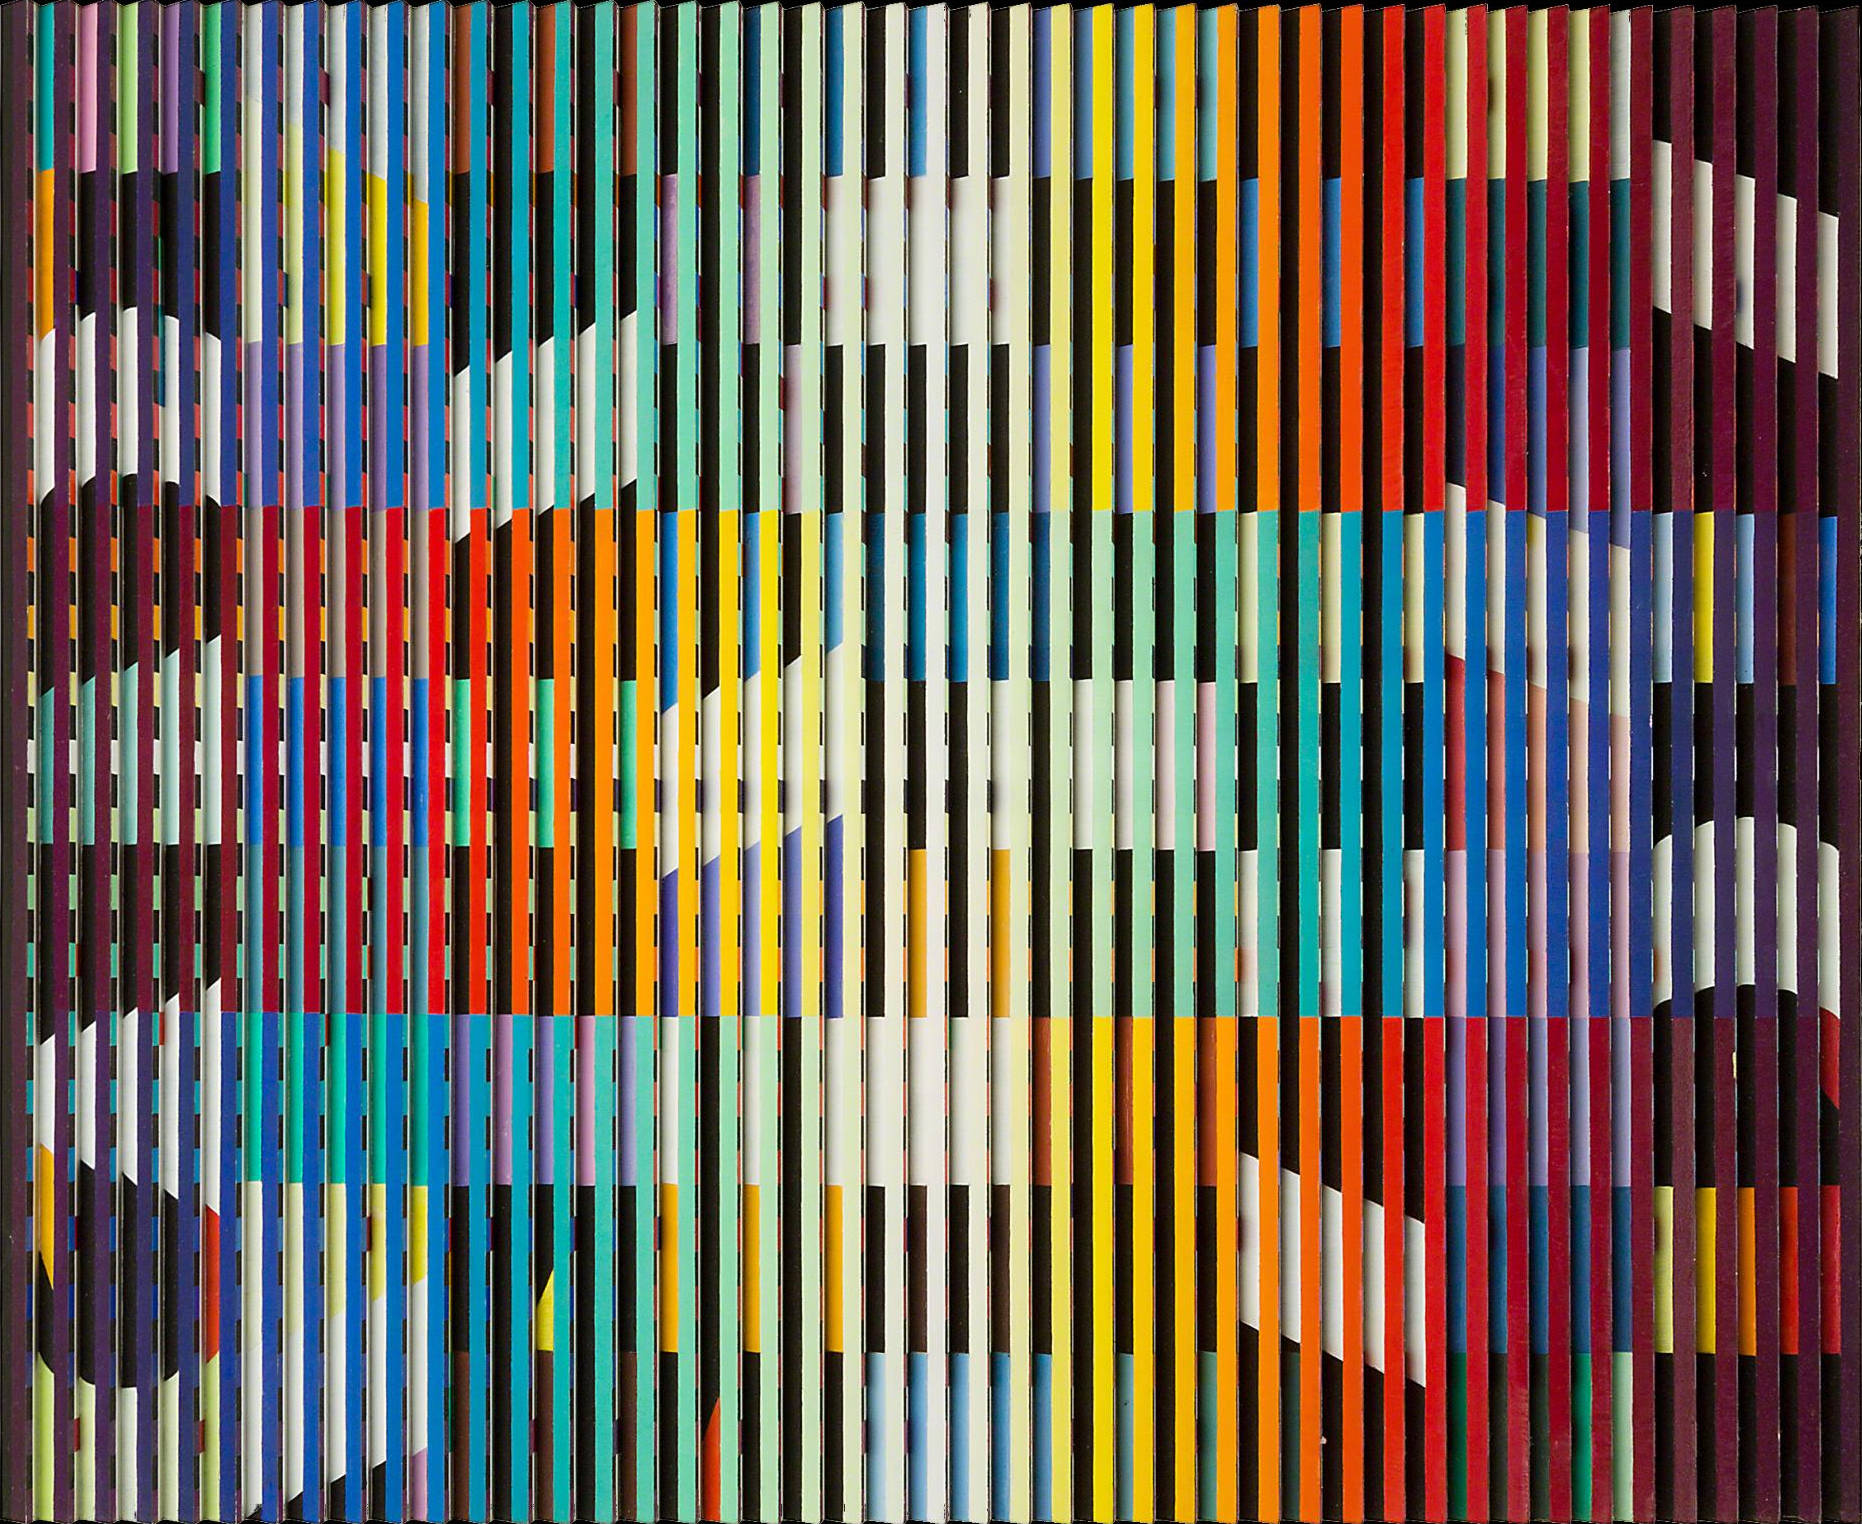 From Birth to Eternity (© 2017 ADAGP, París / SAVA, Buenos Aires) (1969) - Yaacov Agam